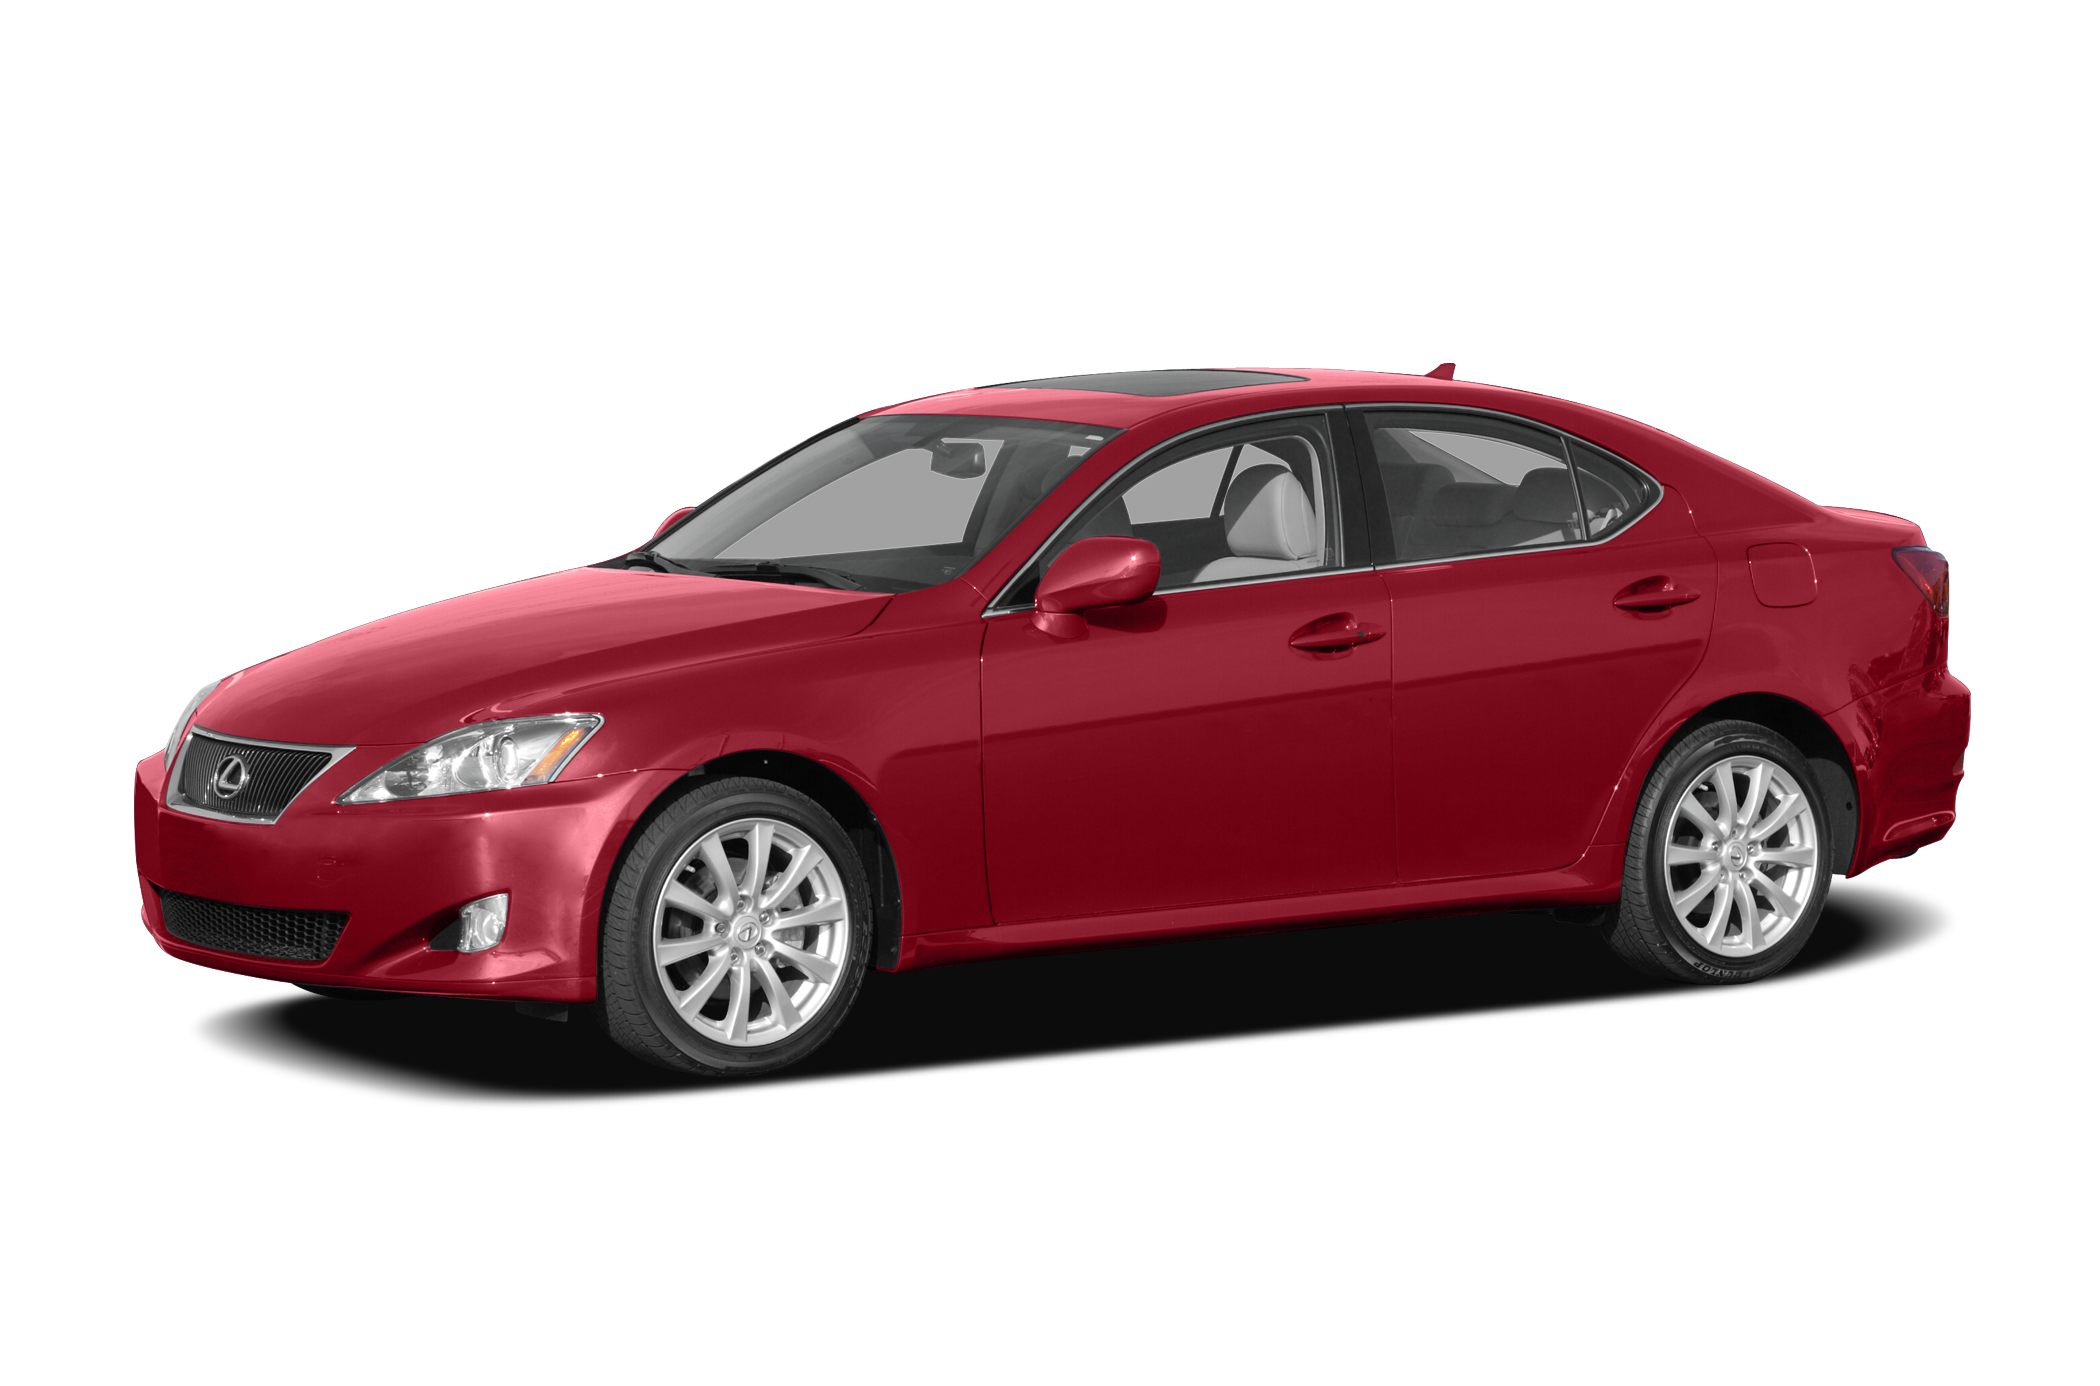 2008 Lexus IS 250 Sedan for sale in Sioux Falls for $16,975 with 64,043 miles